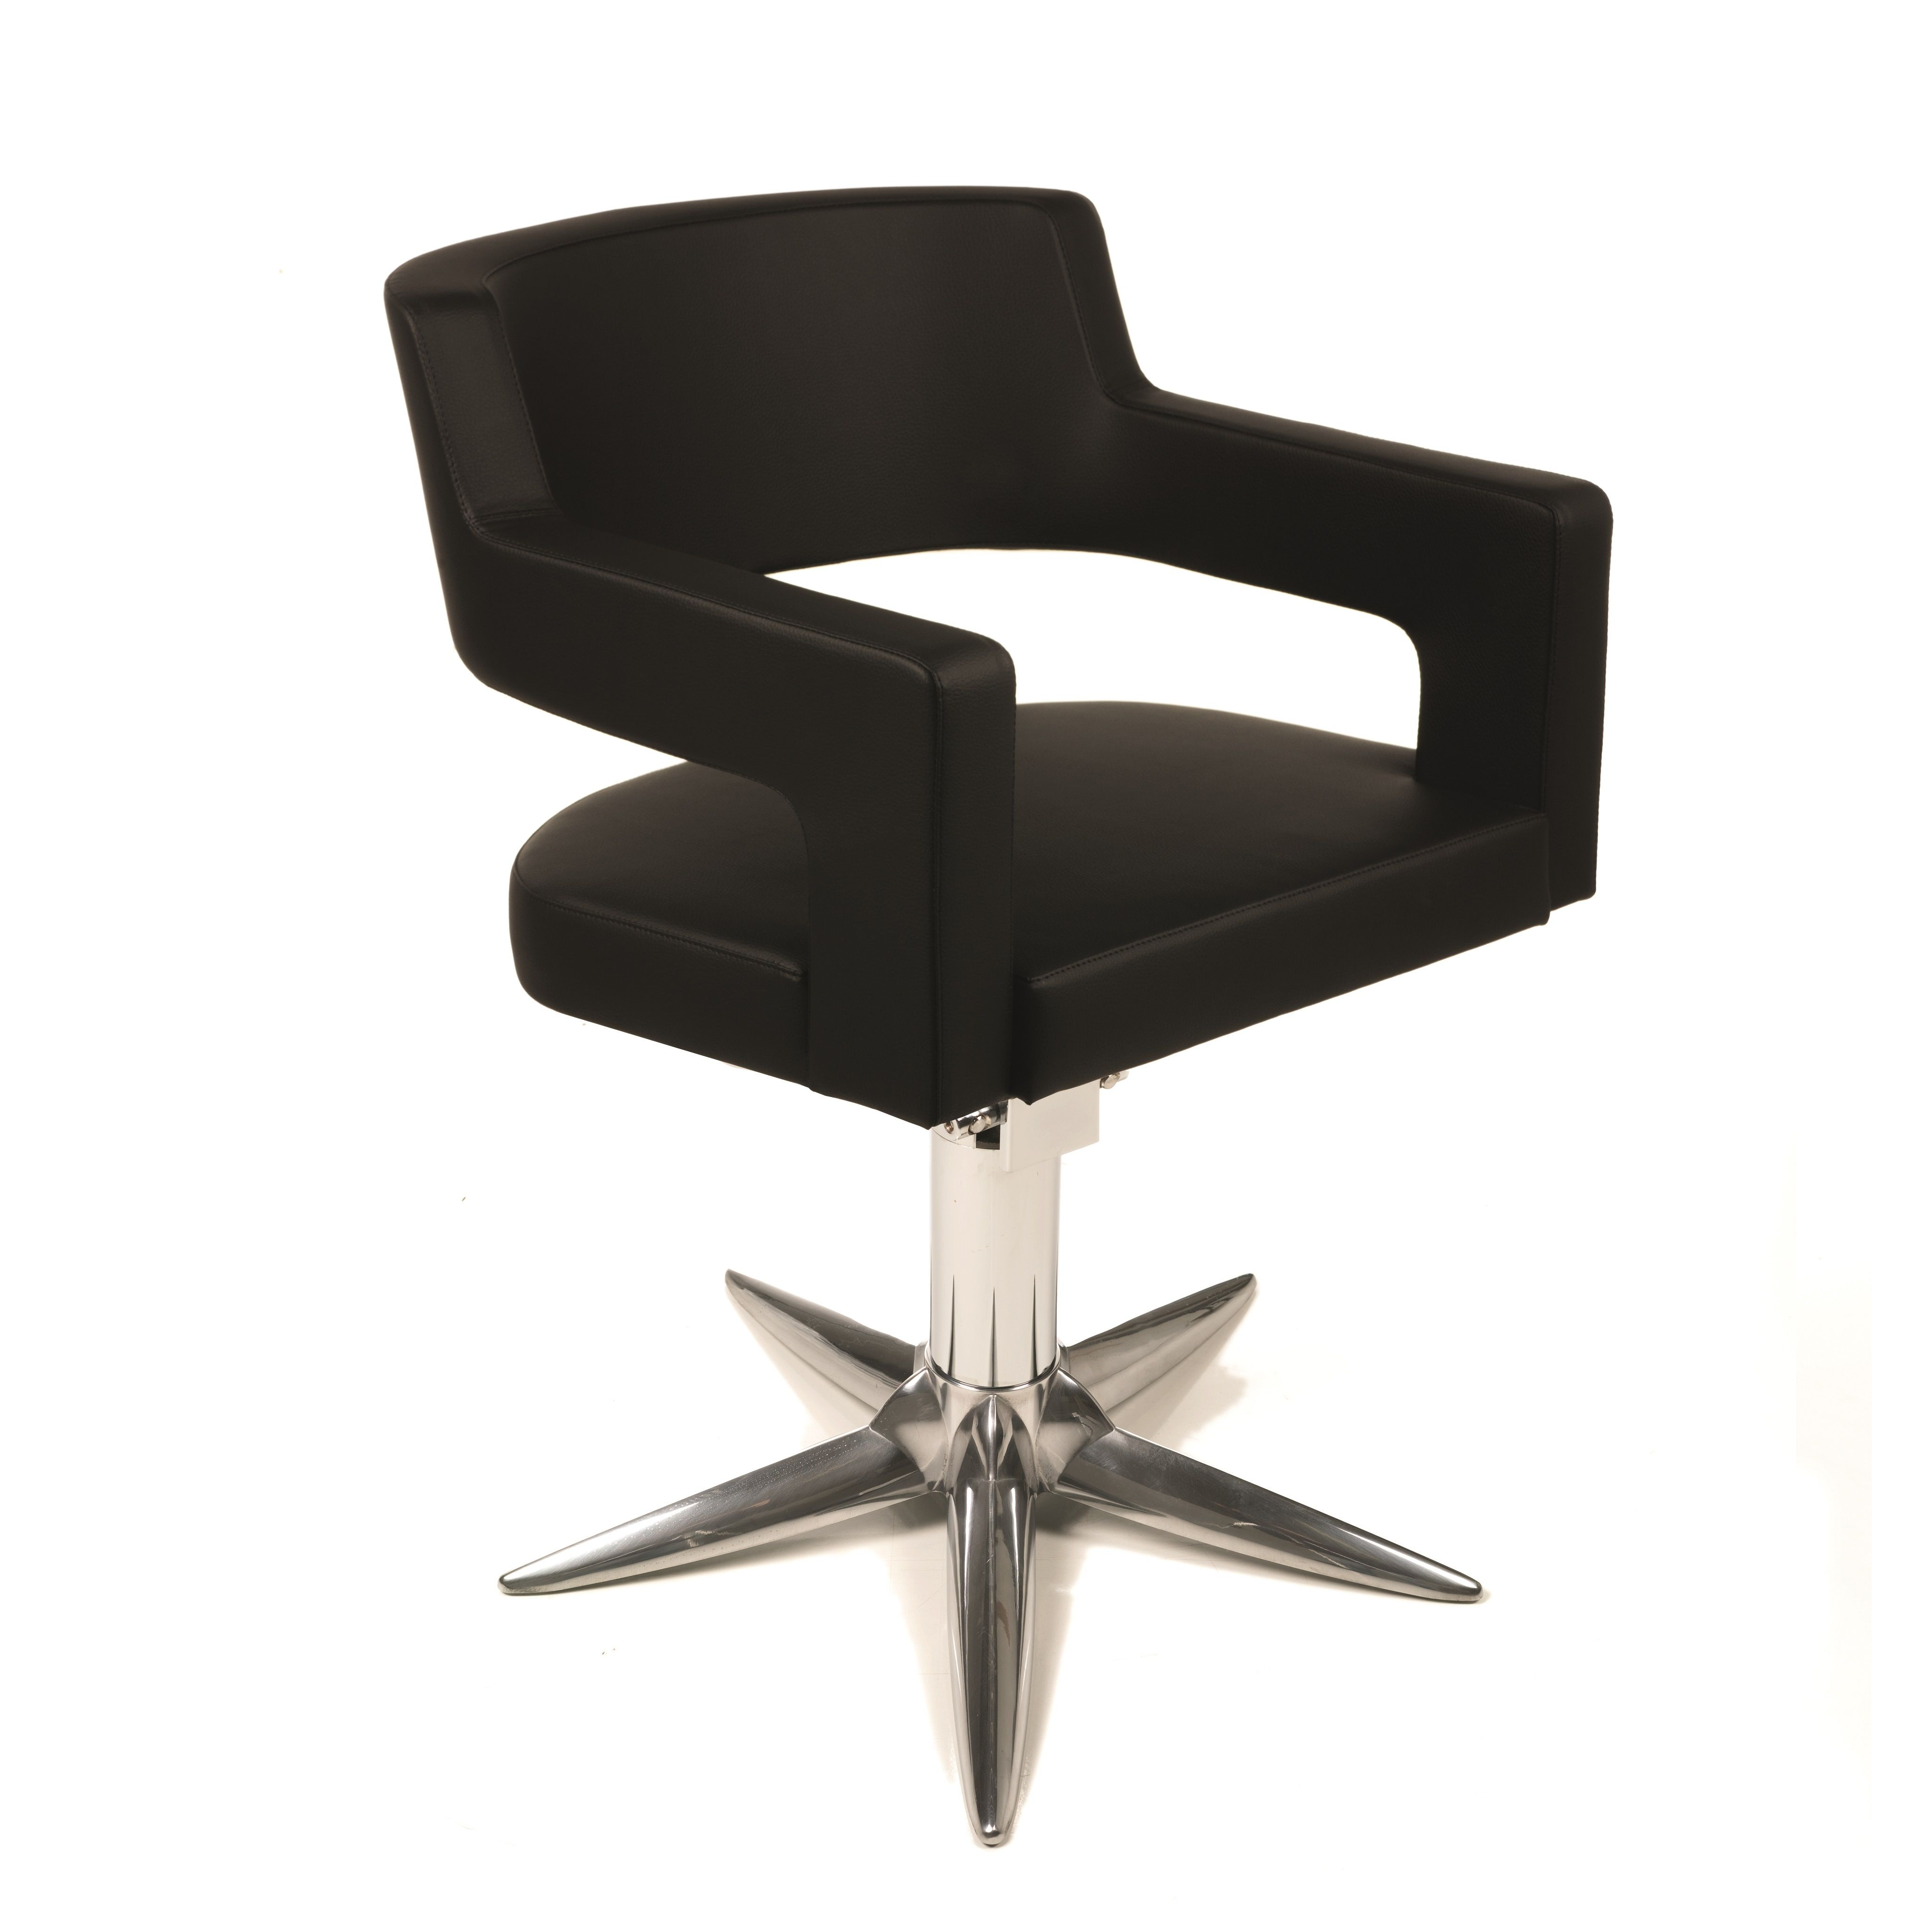 Novvo Etopa Gamma Bross Creusa Roto Styling Chair With Parrot Base With Images Chair Style Chair